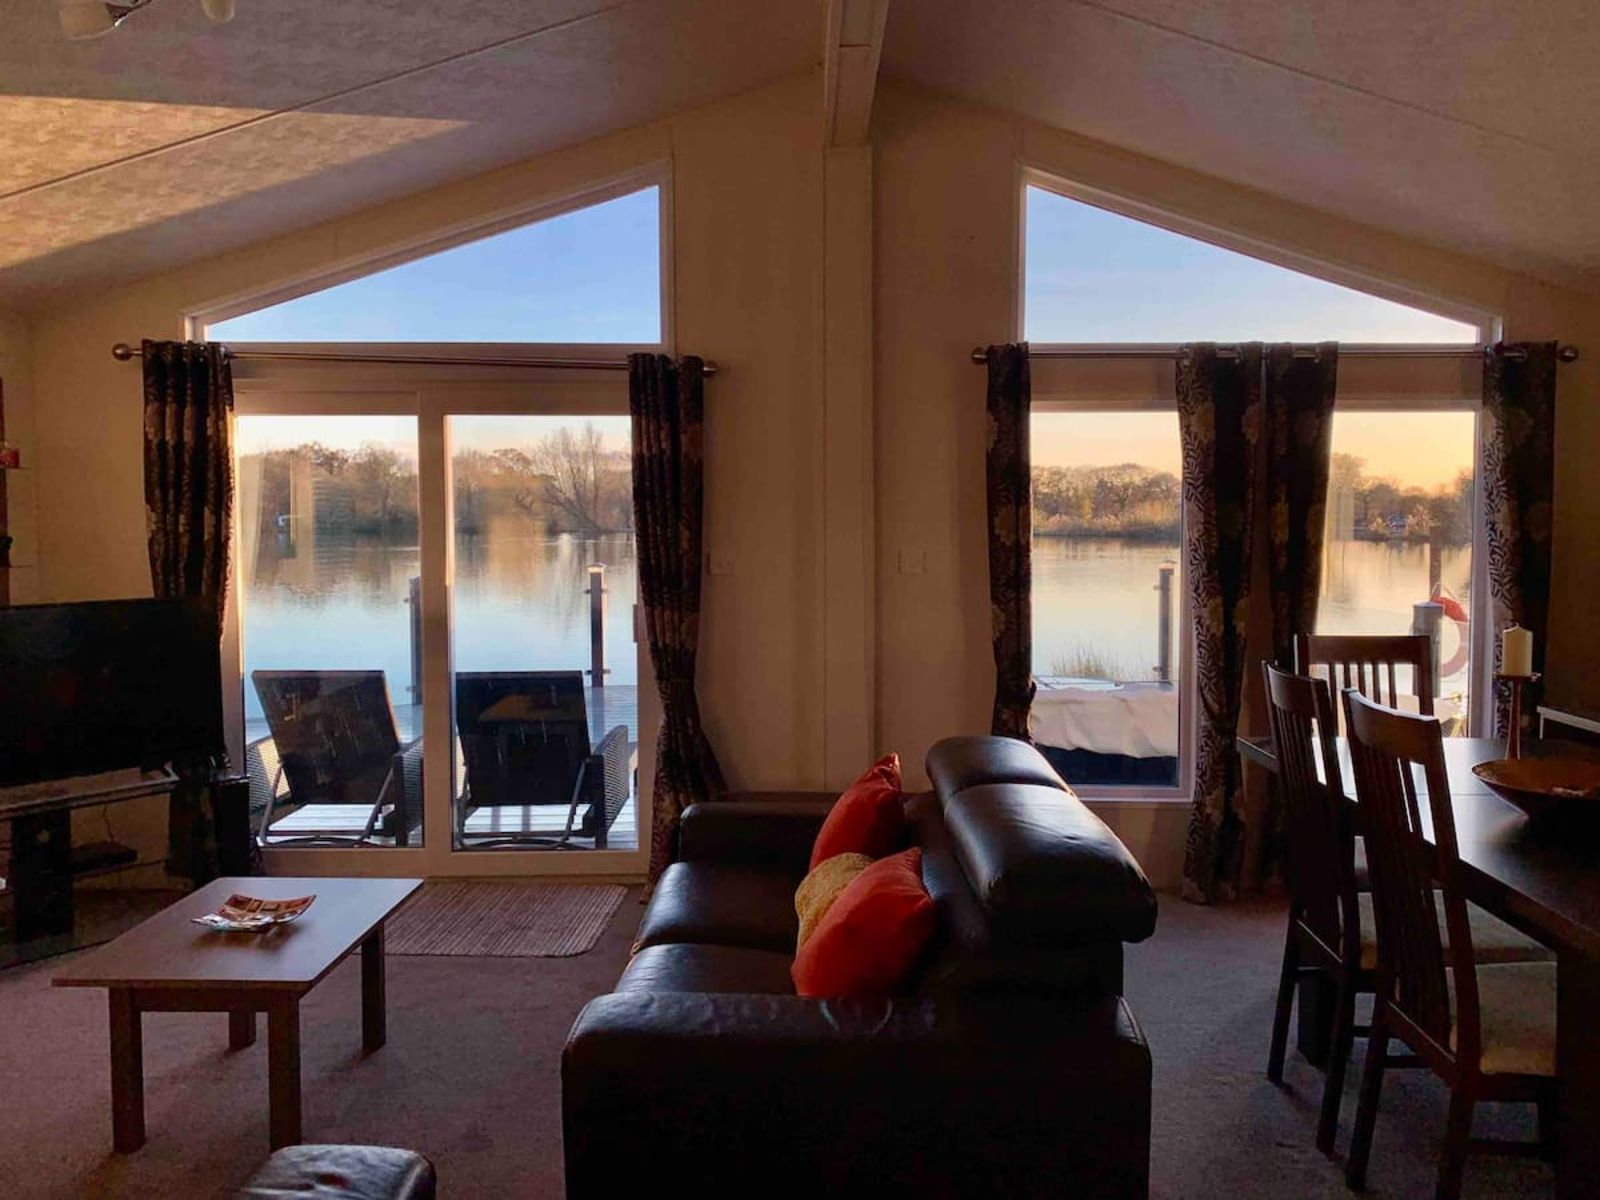 Luxurious Lodge with Hot Tub on Lake at Chichester airbnb